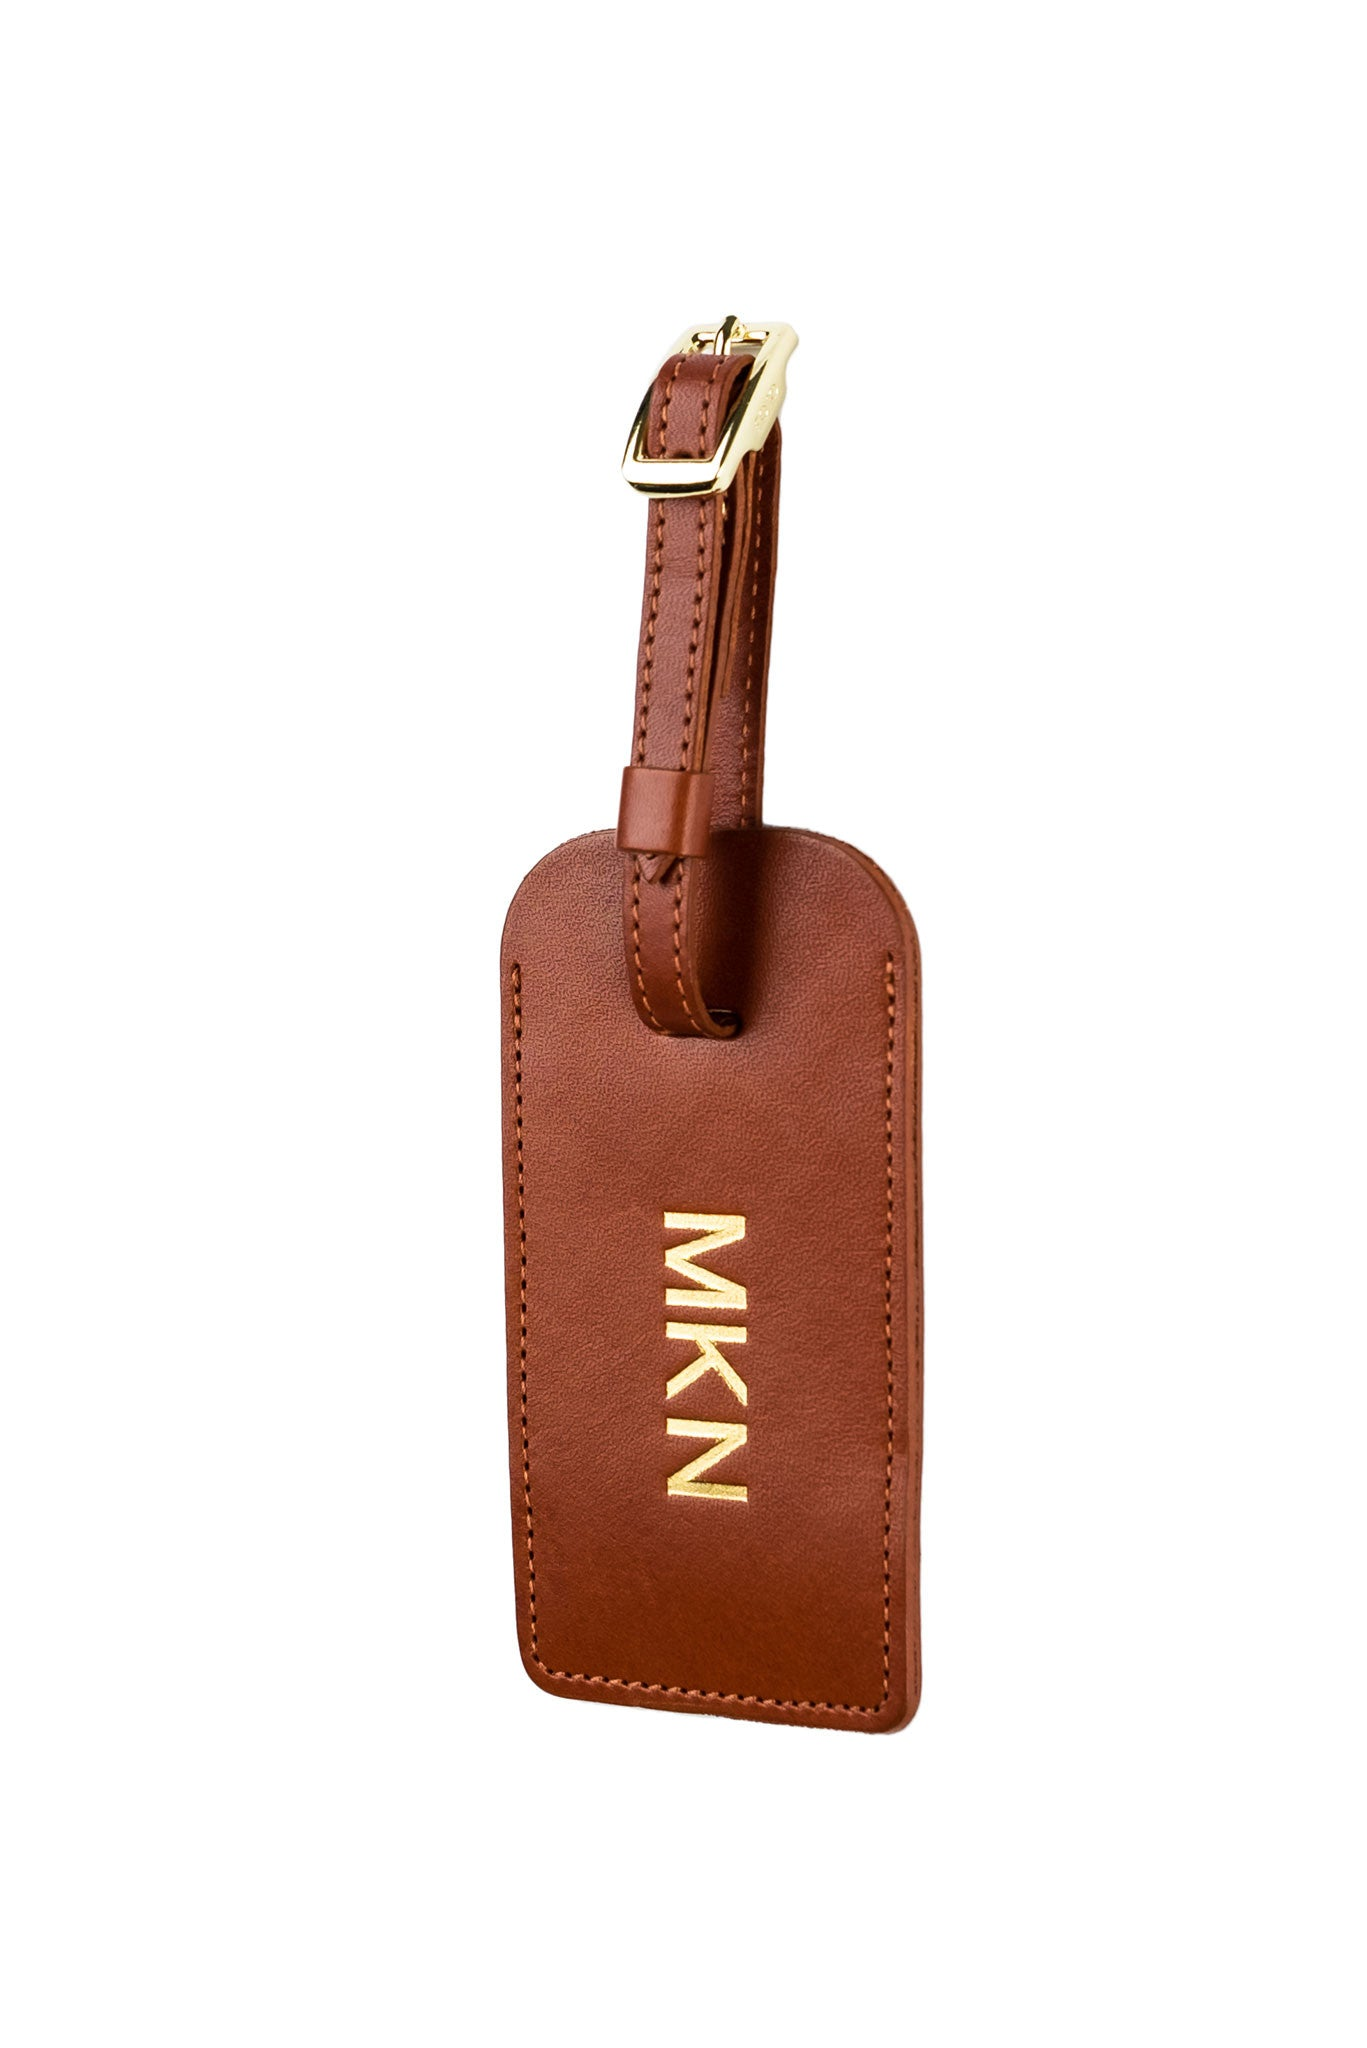 FOTO | Cognac Leather Luggage Tag for Photographers - genuine leather luggage tag that can be personalized with gold foil initials, a monogram or business logo making it the perfect personalized travel gift.